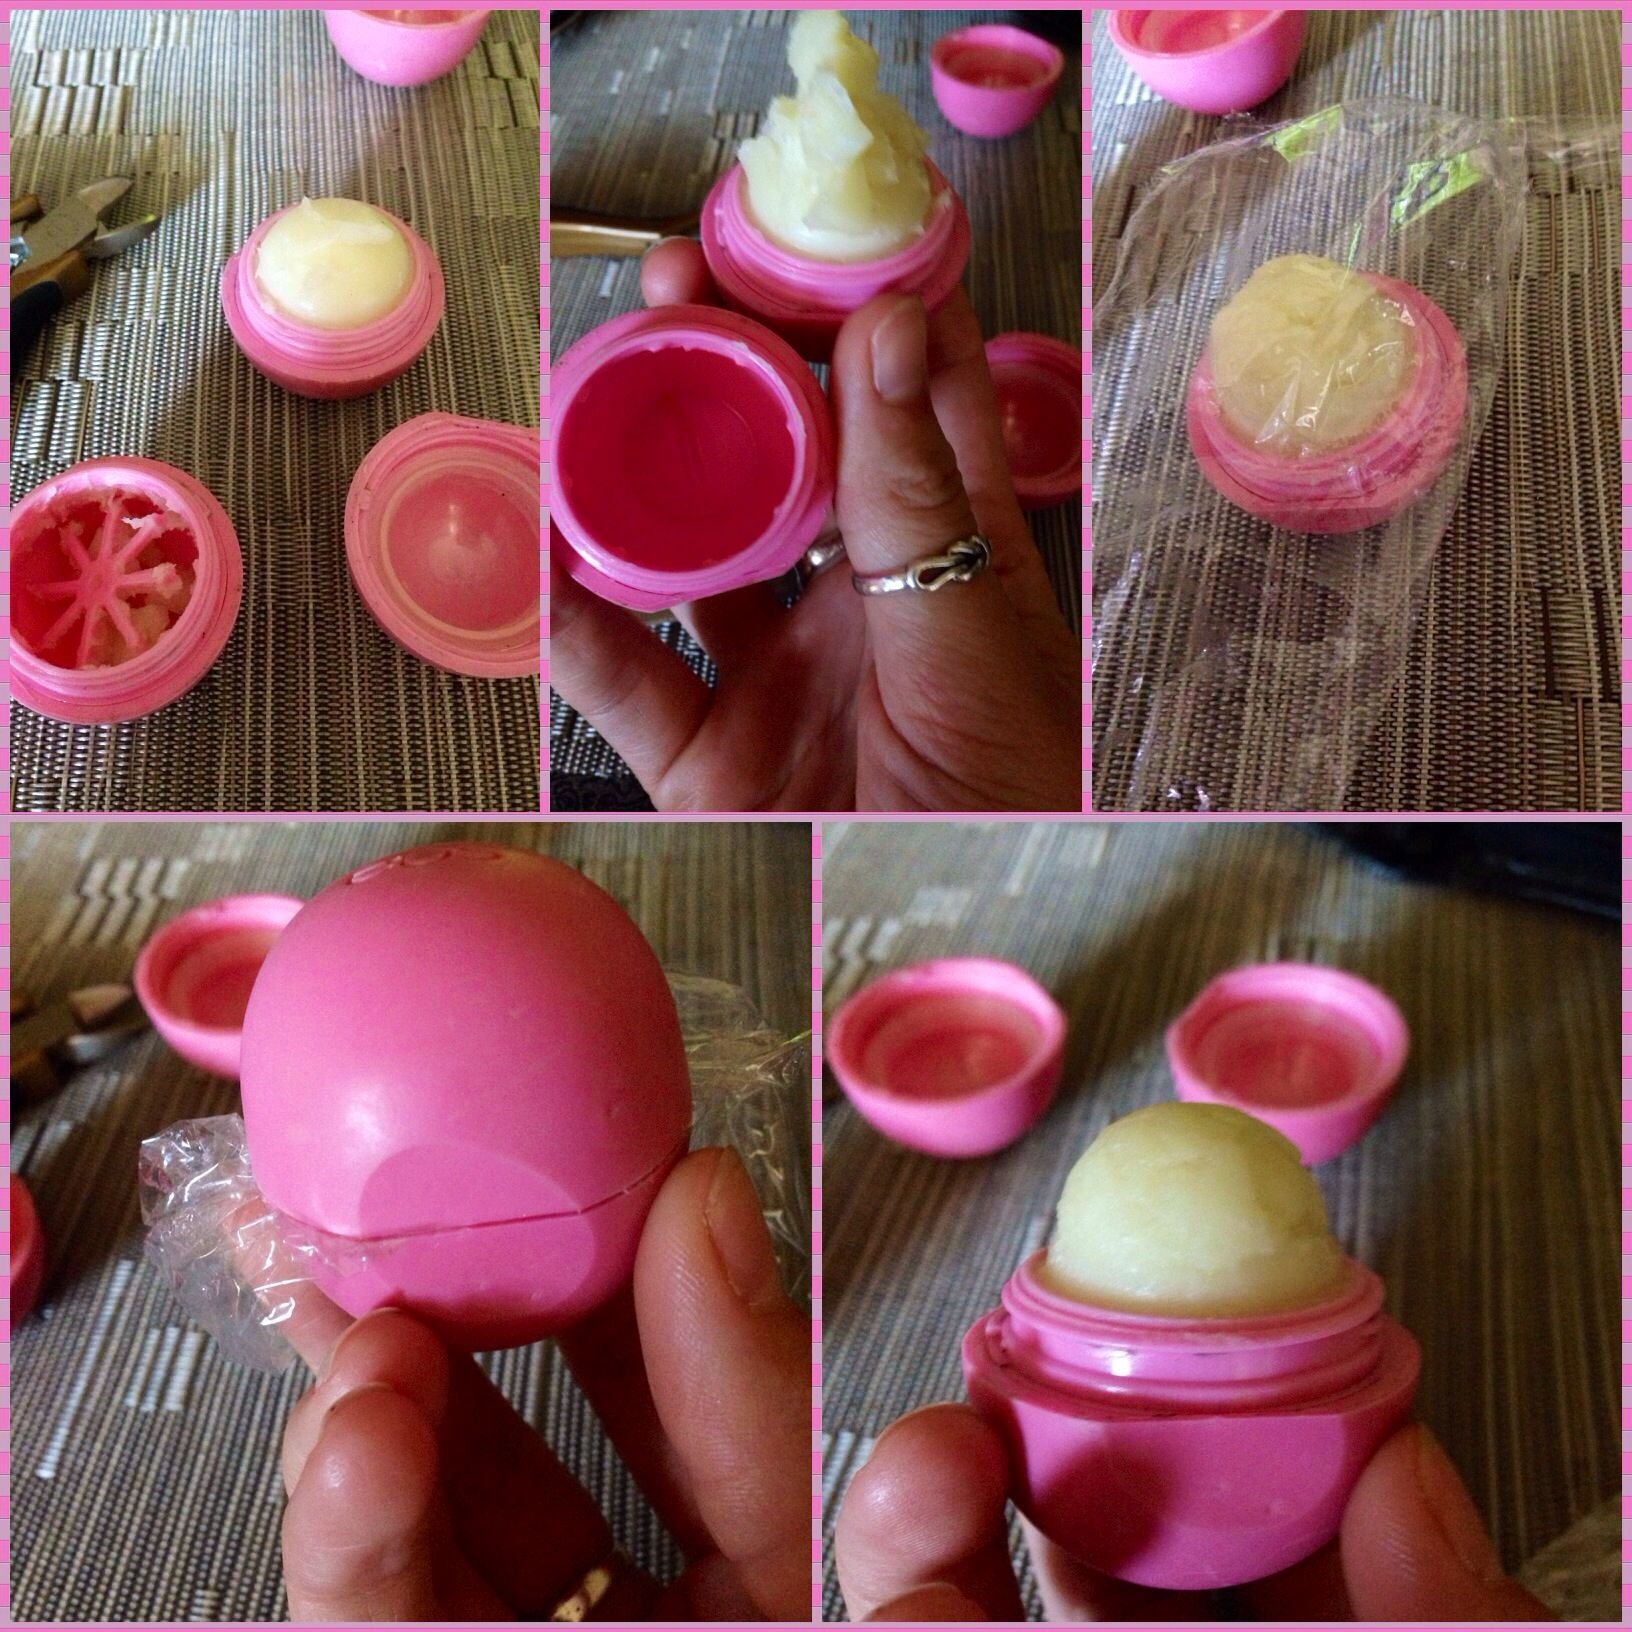 Balm christmas gift turn old eos containers into cool crafts ideas - 9 Hacks For Repurposing Old Makeup Containers Into Something Useful